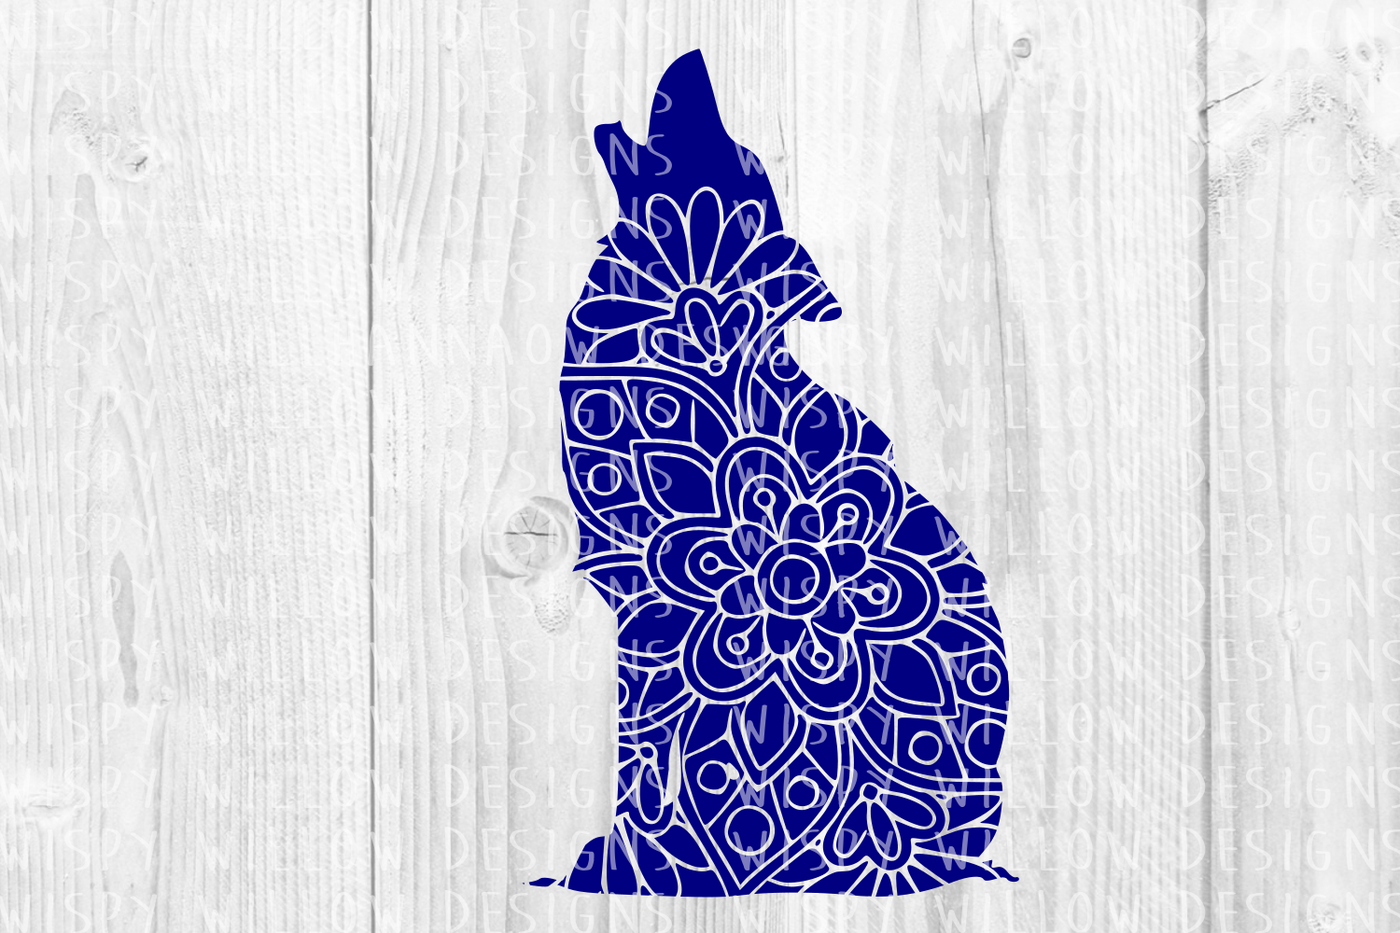 Howling Wolf Floral Mandala Svg Dxf Eps Png Jpg Pdf By Wispy